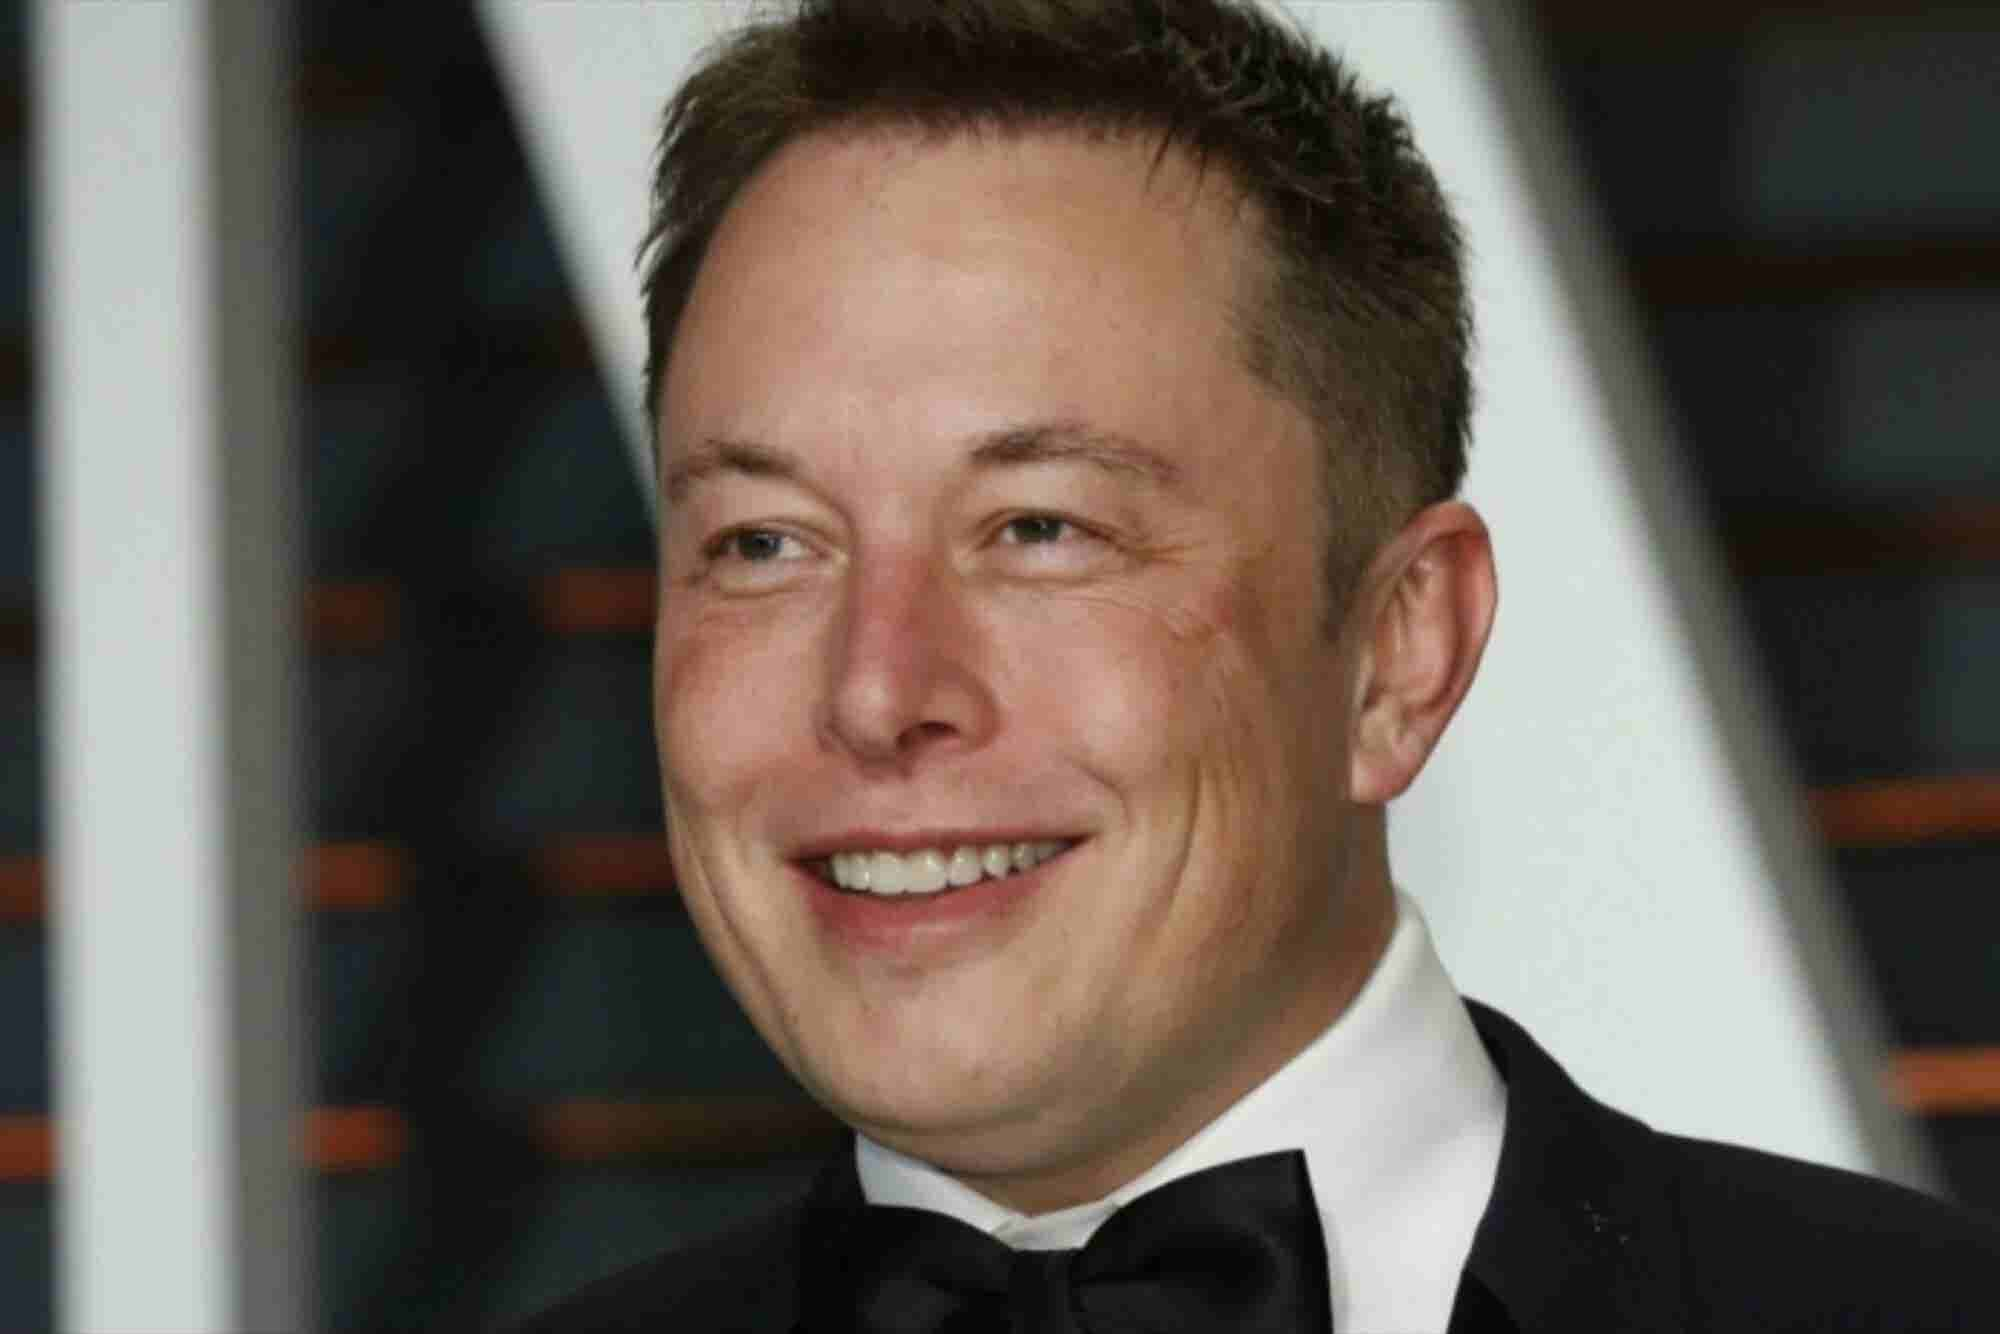 And the Most Admired Tech Founder Is ... Elon Musk